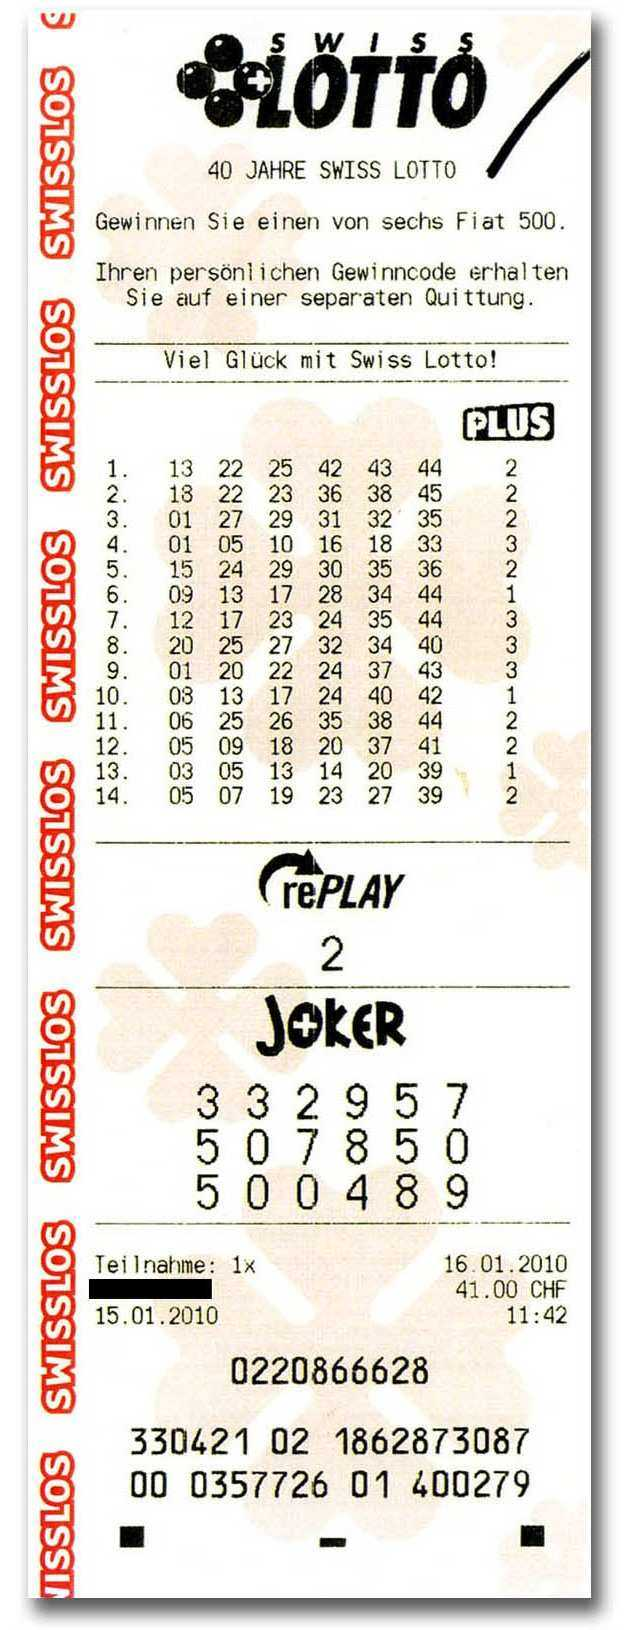 Swiss lotto | check results, jackpot, stats & odds